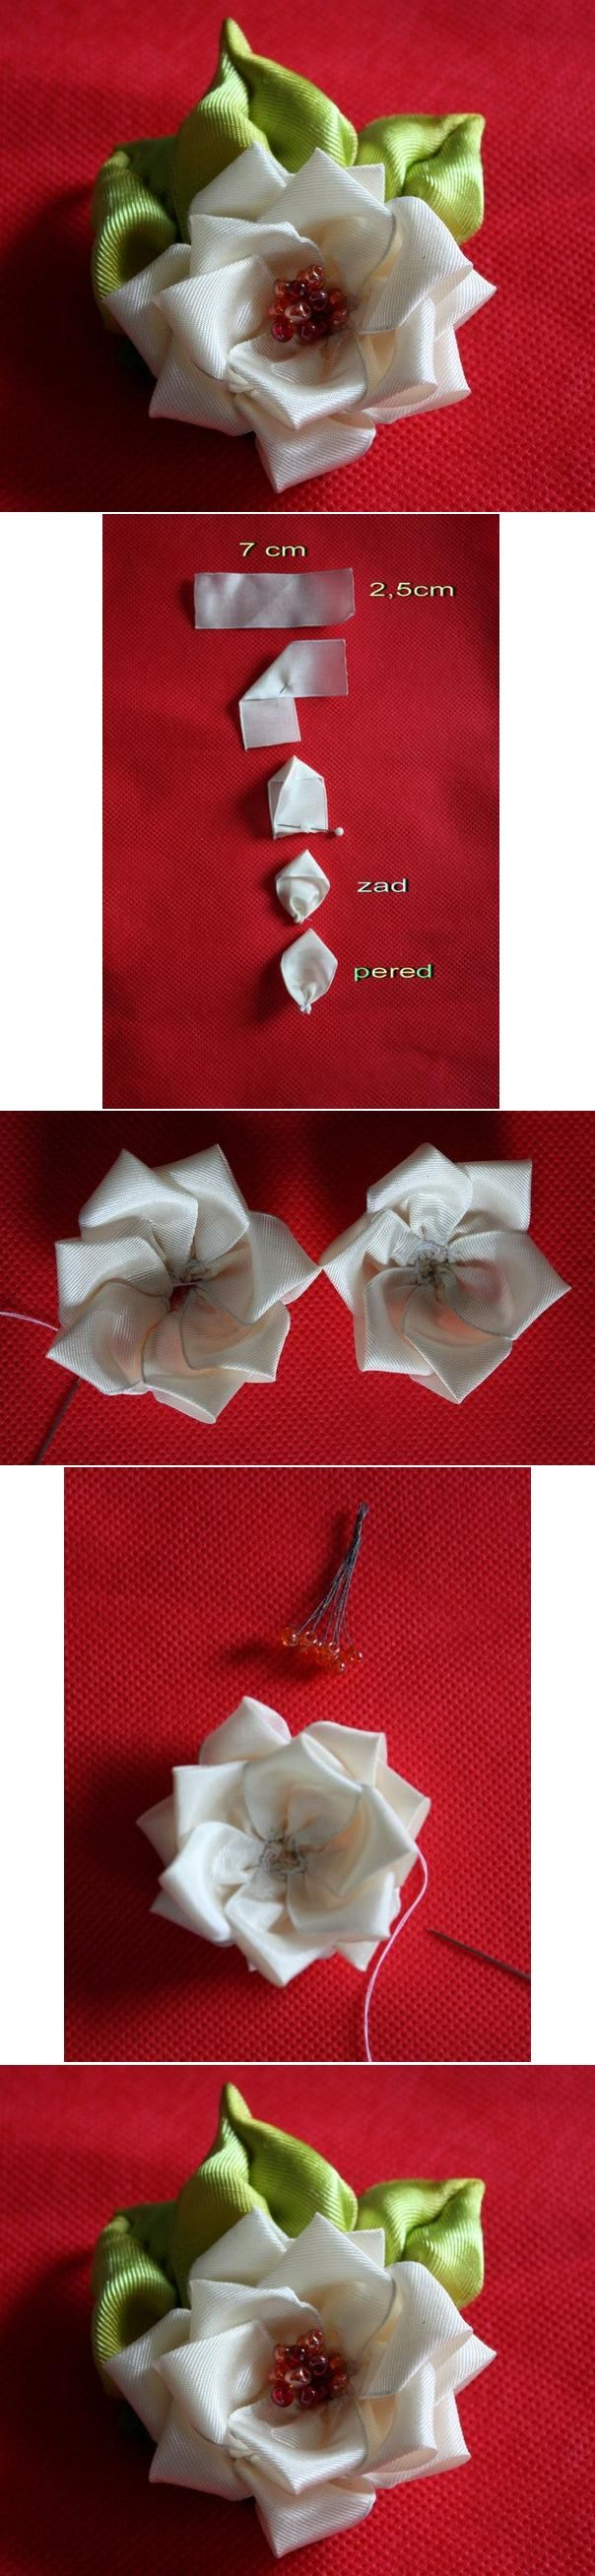 DIY Simple Flower Brooch